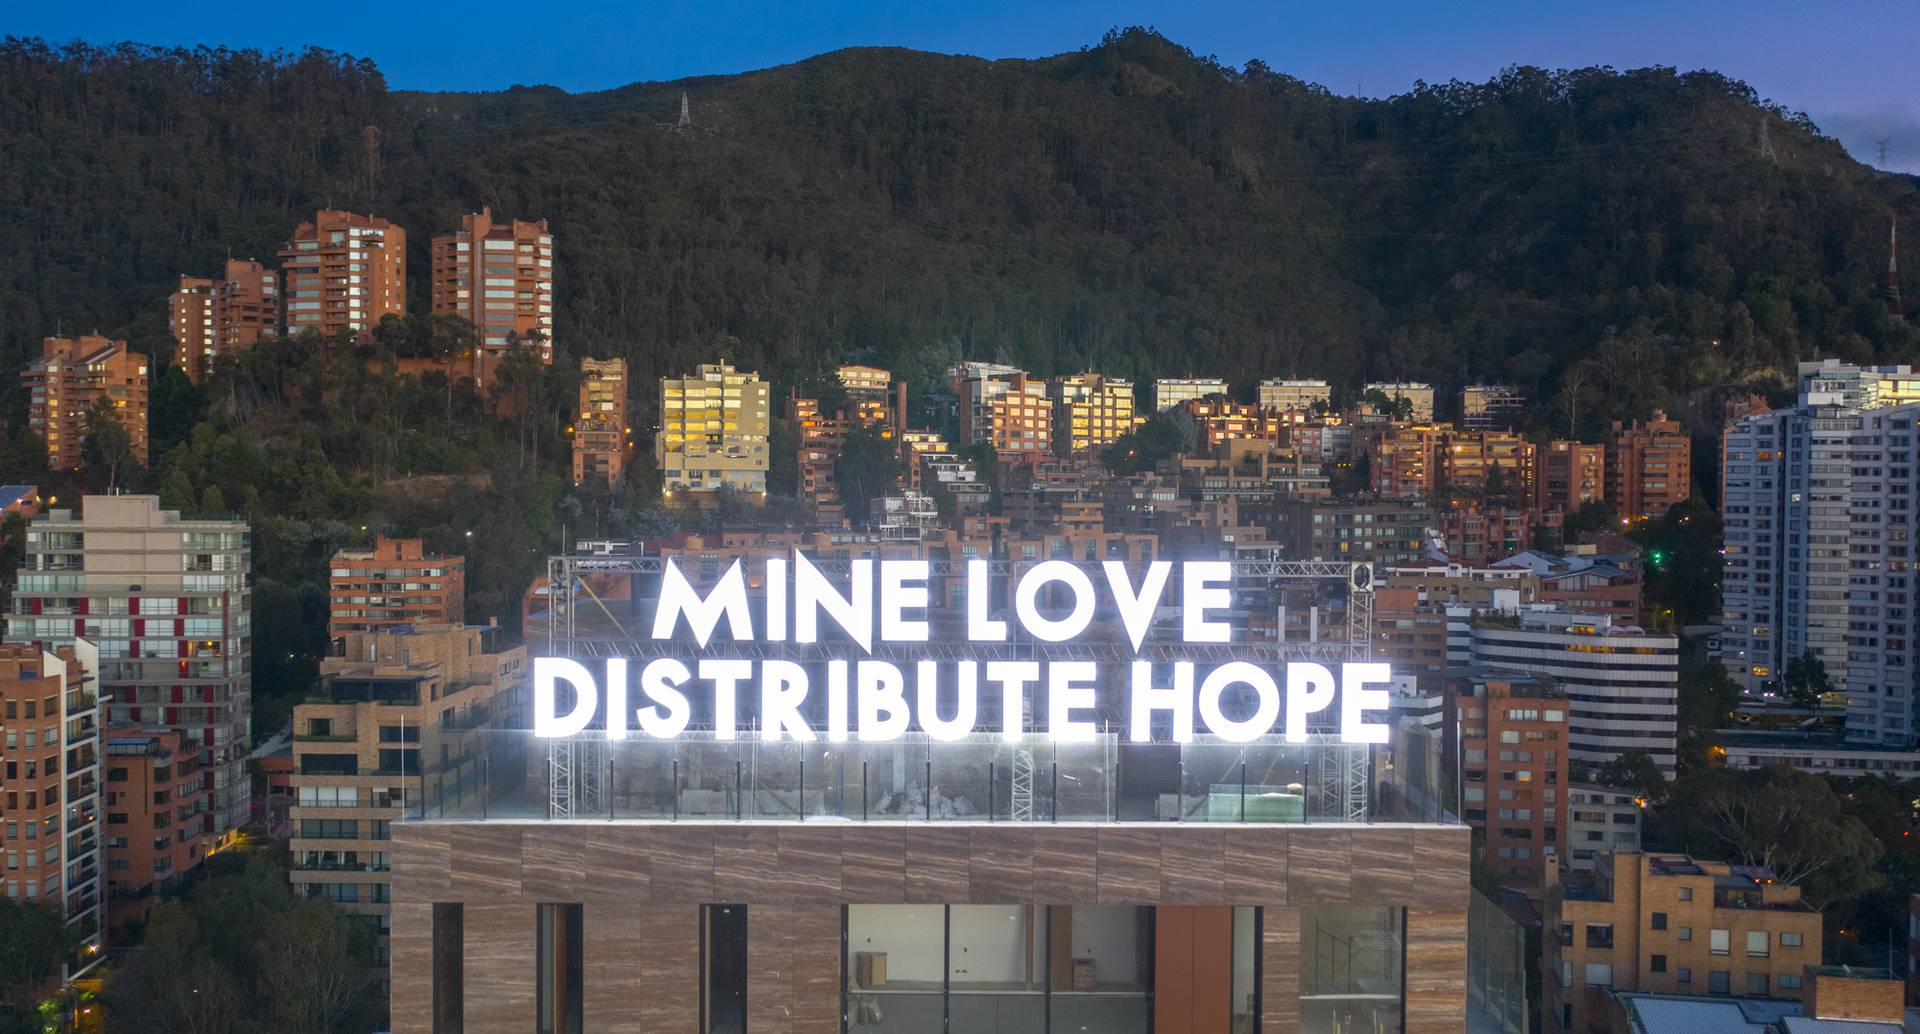 """Mine love distribute hope"" de Robert Montgomery en Bogotá. Cortesía de Barcú y el British Council."